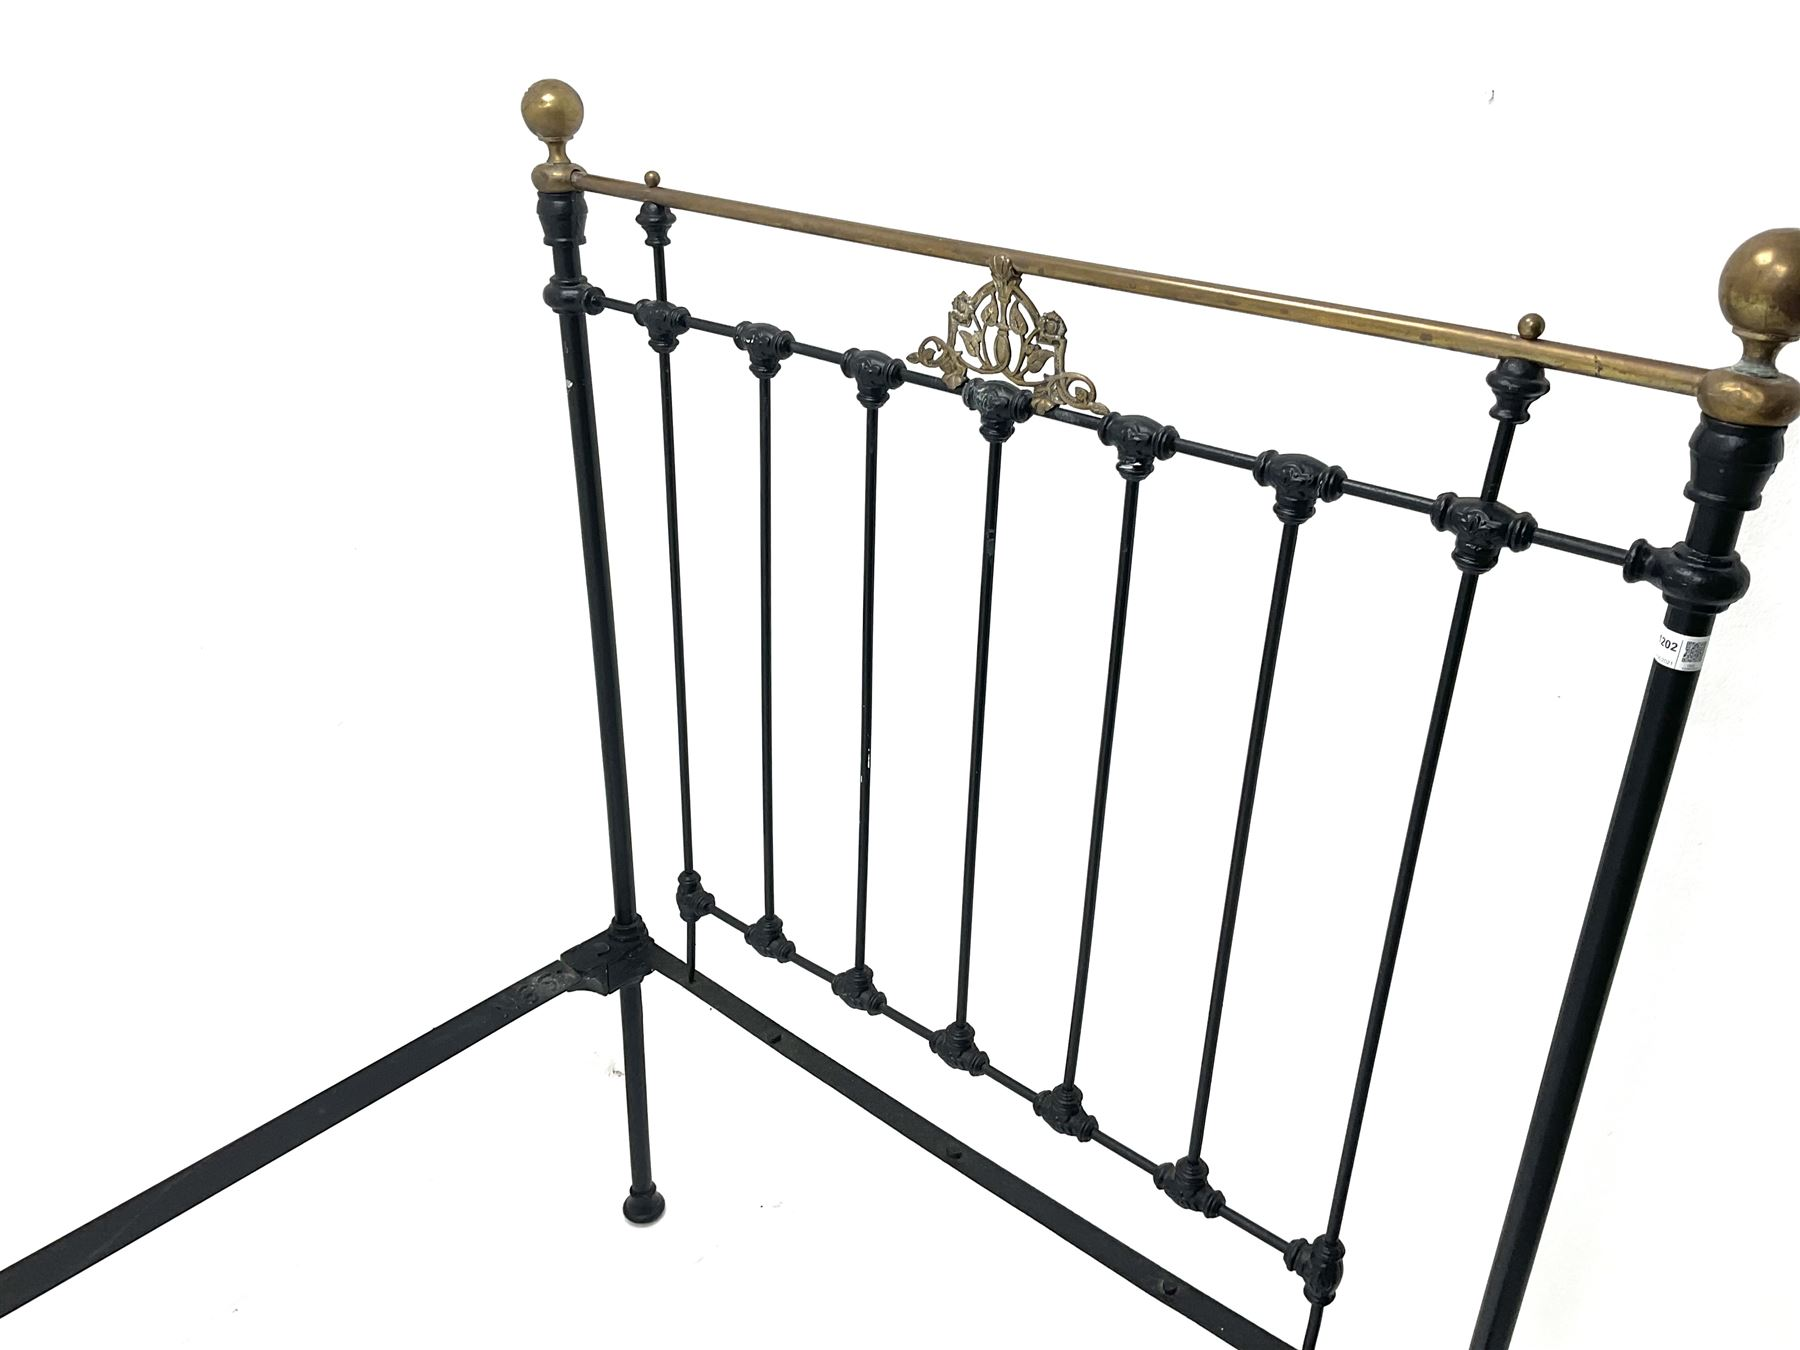 Maples and Co Brass and black painted wrought metal bedstead - Image 3 of 3